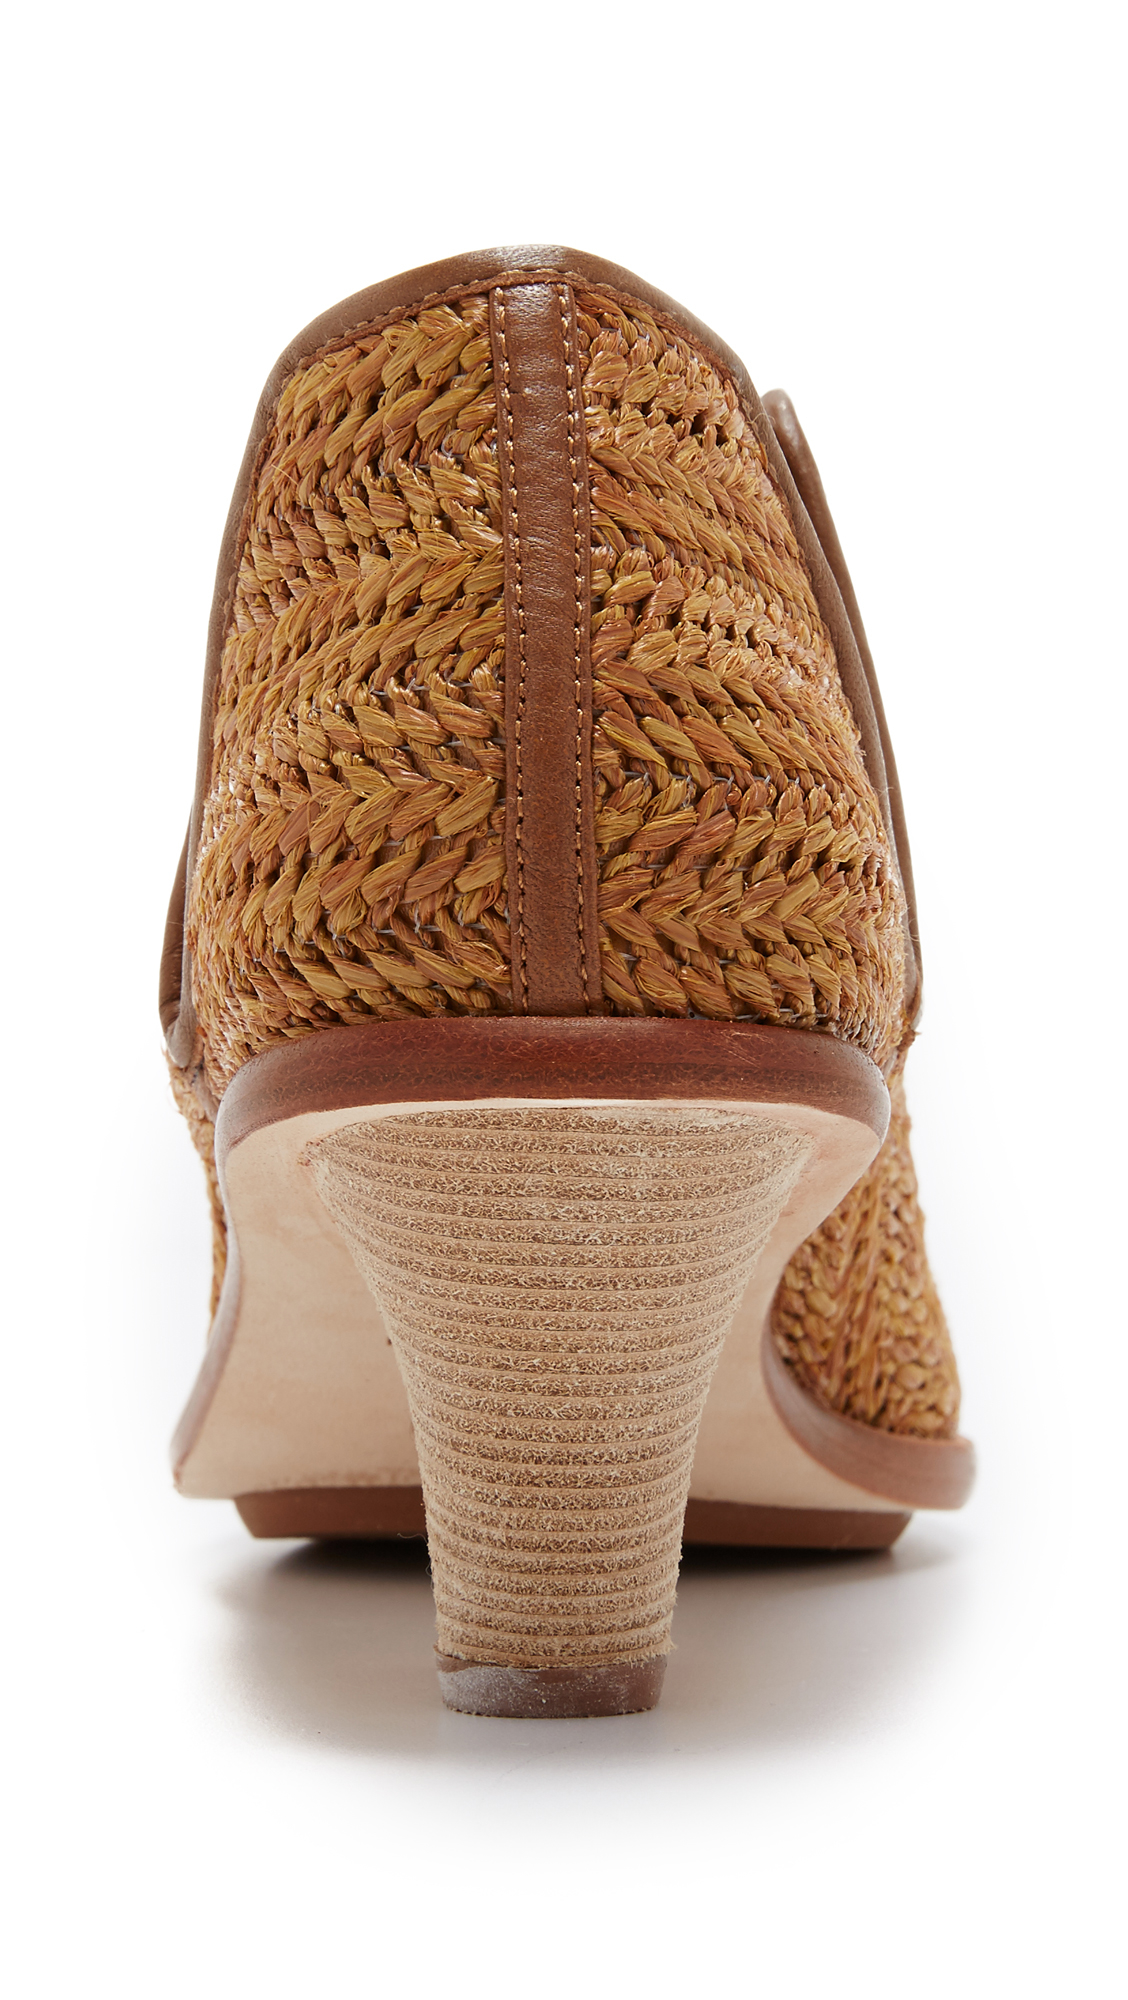 Matt Bernson Leather Marlow Woven Raffia Bootie Chestnut in Brown